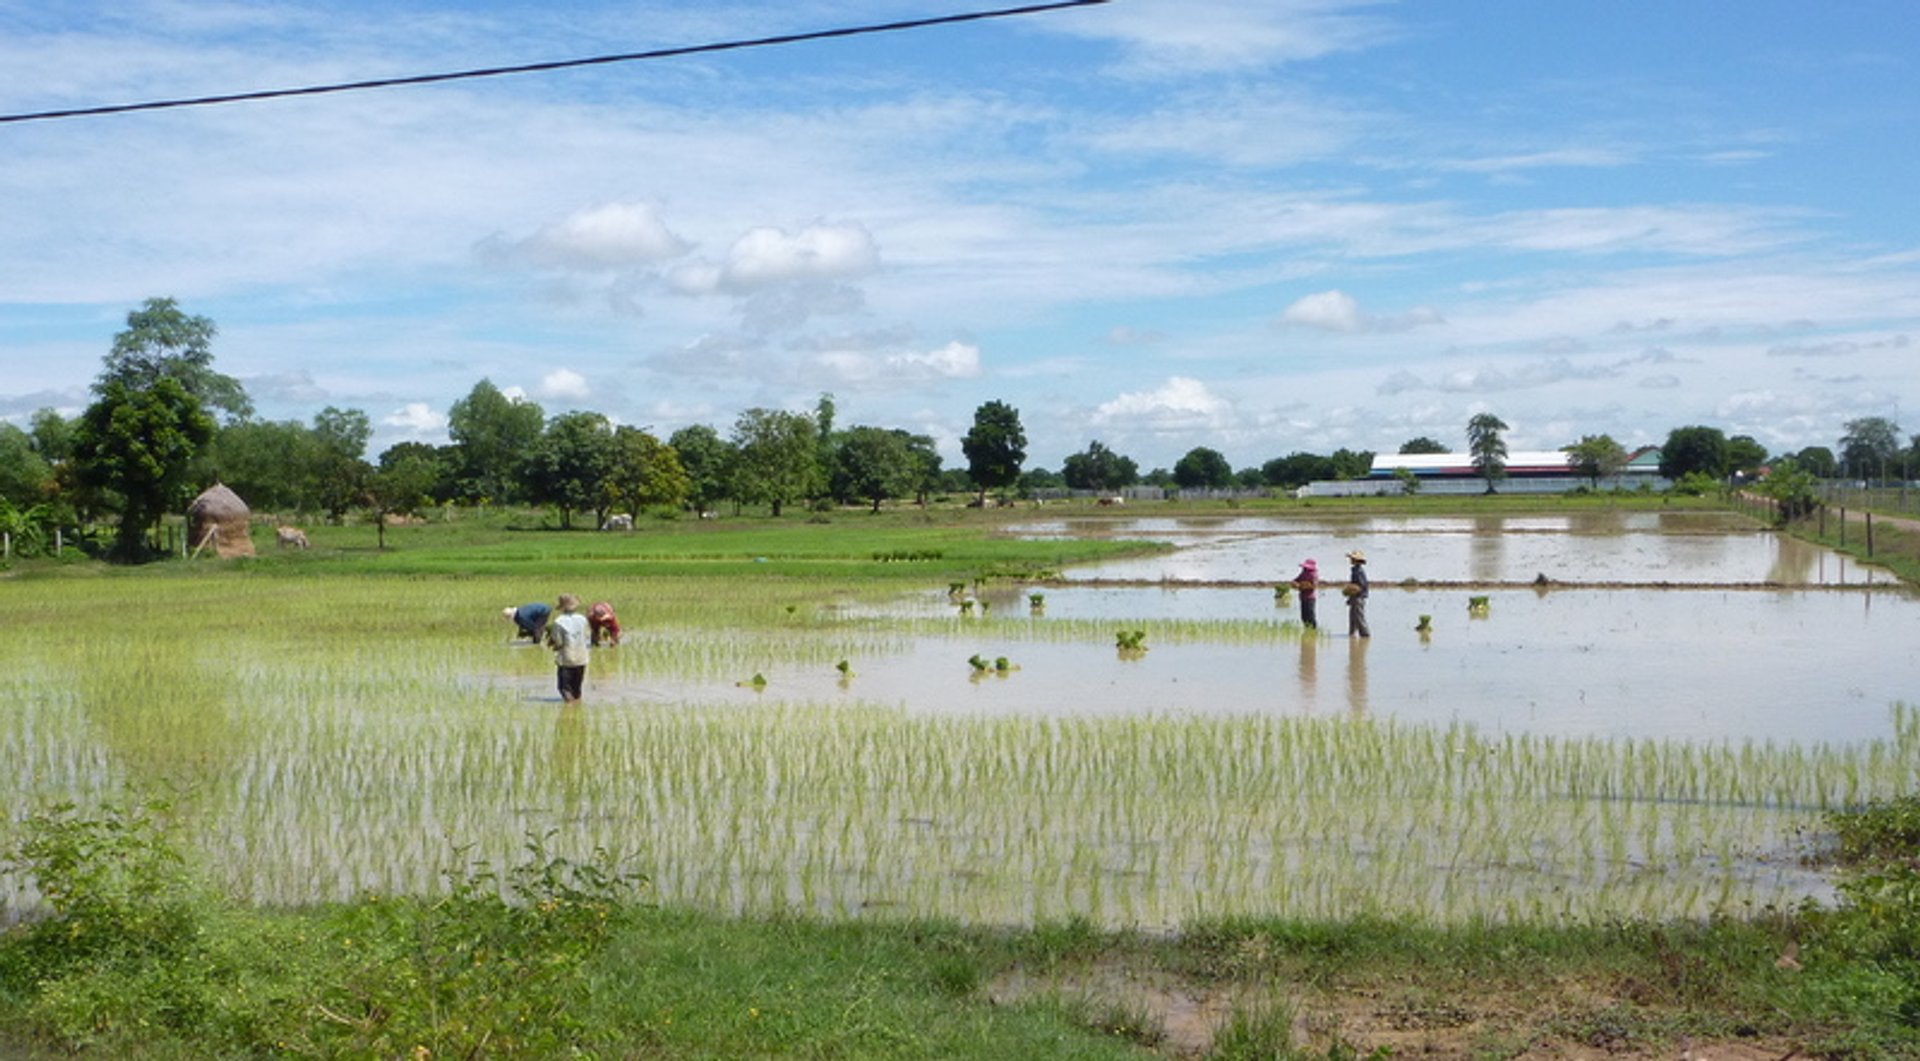 Wet Season in Cambodia 2020 - Best Time